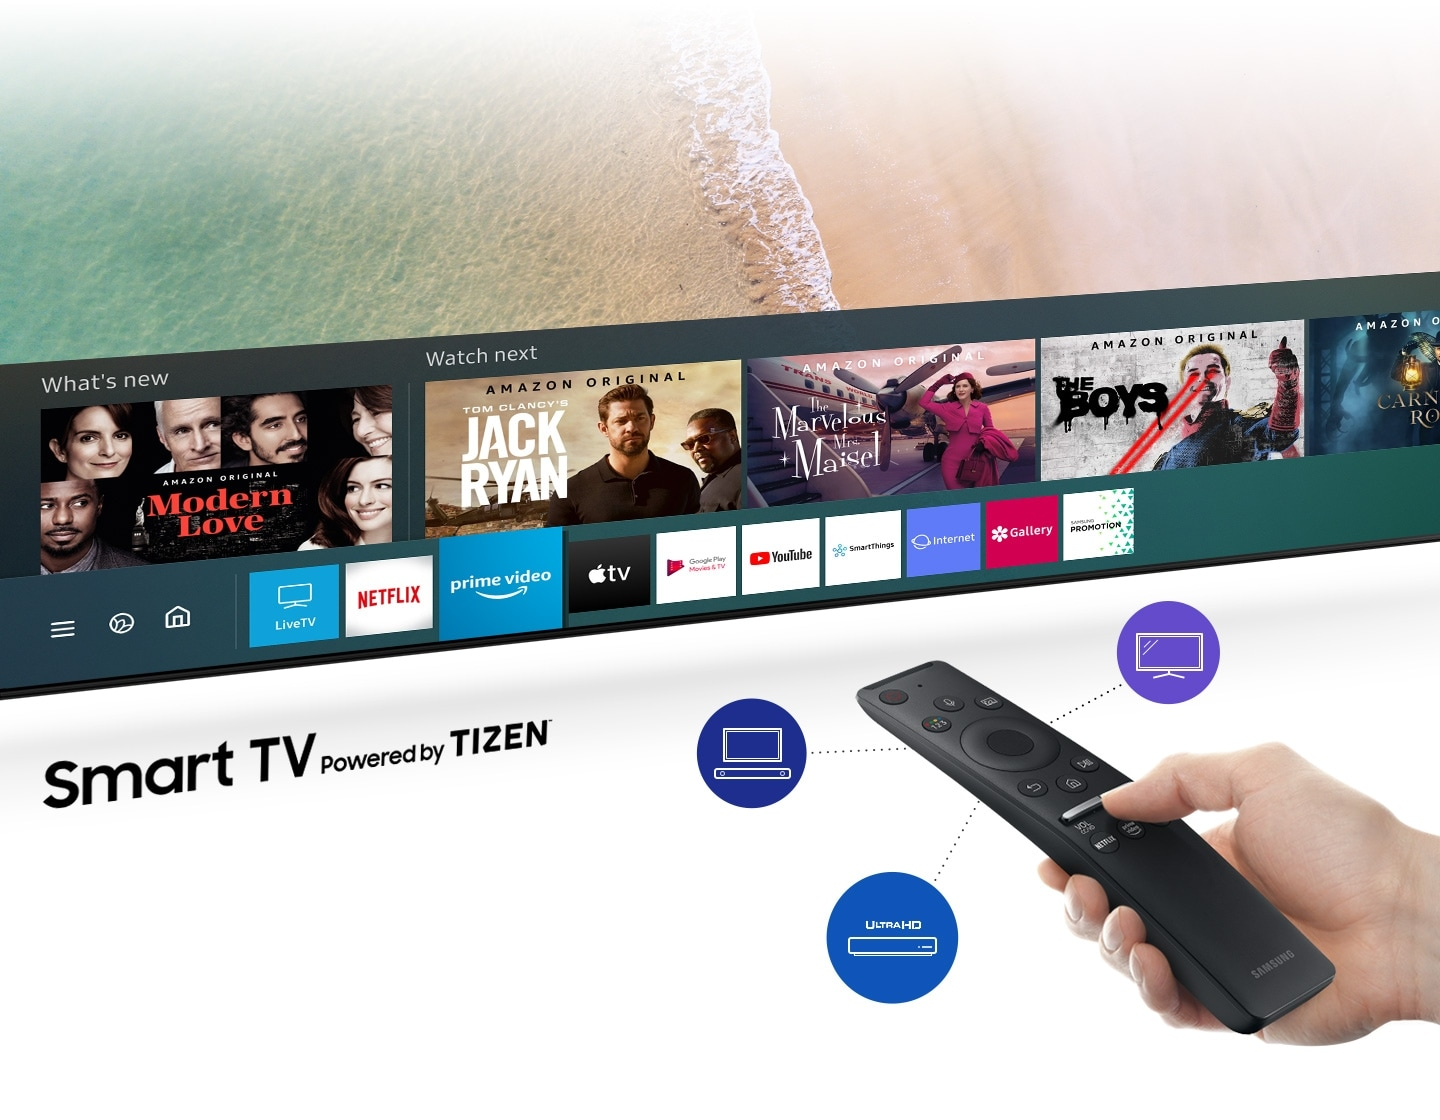 Access various content with one remote